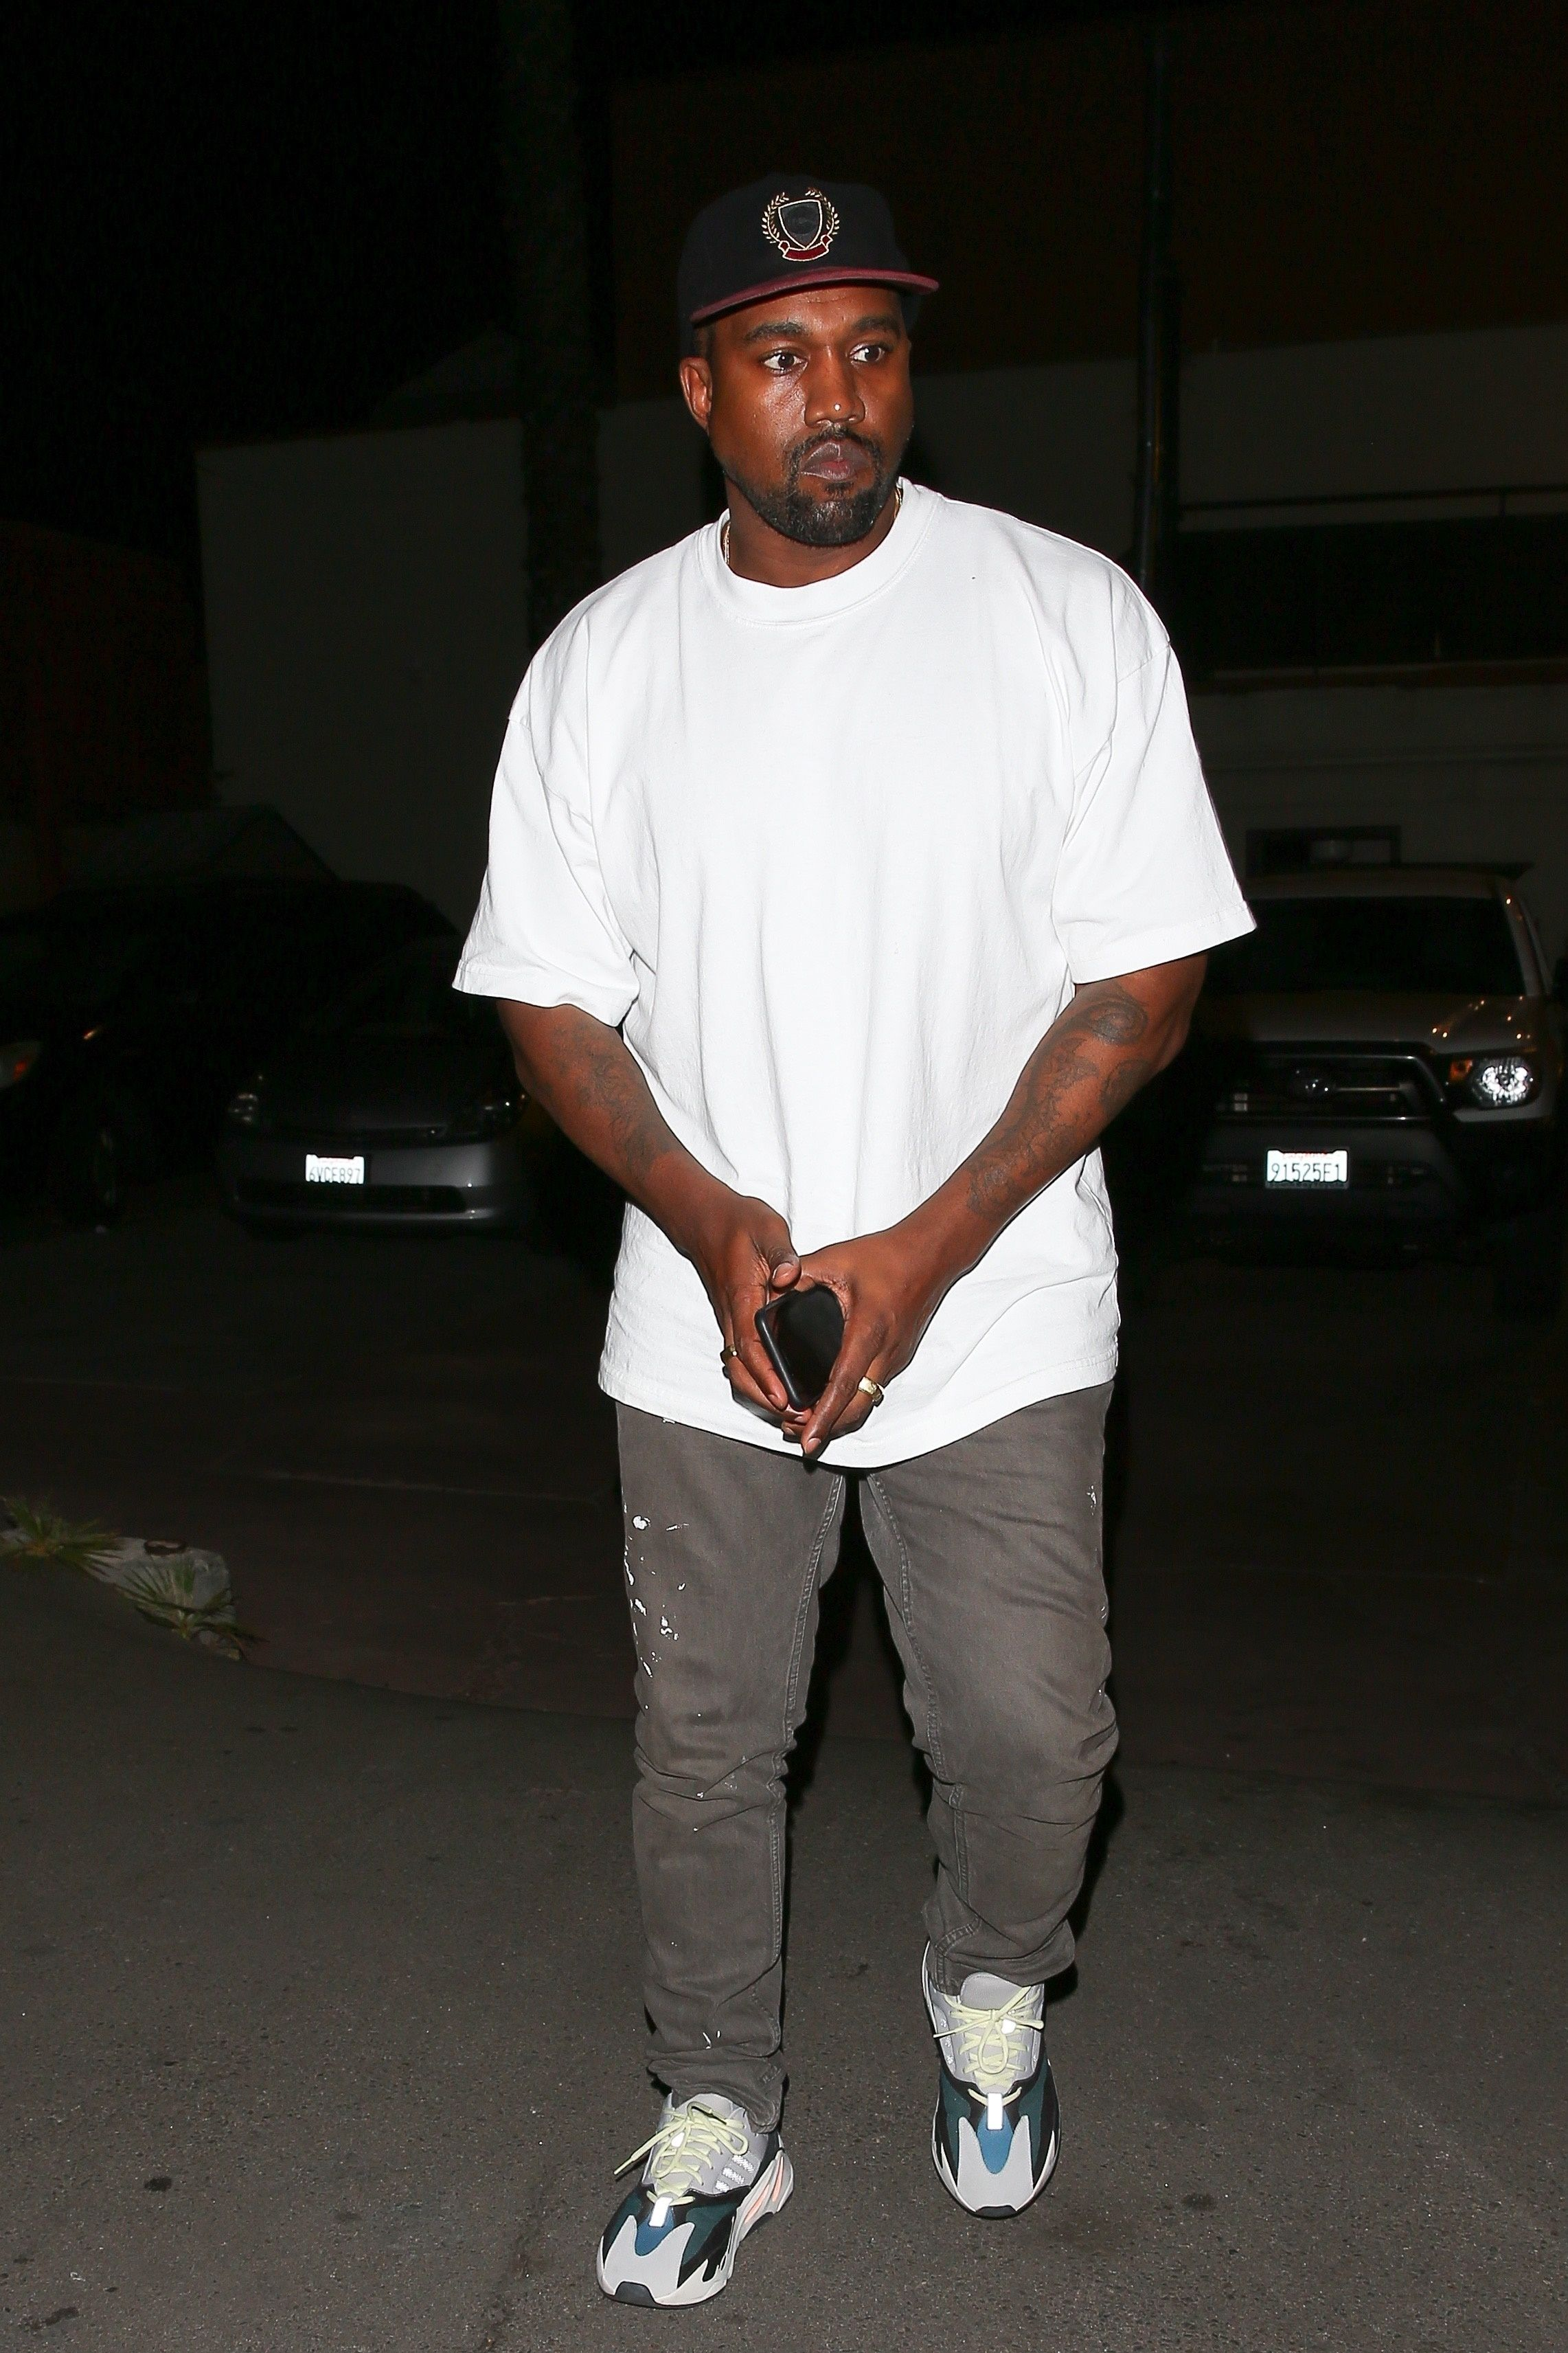 2cf5725e5 Kanye West wearing Yeezy Season 5 Crest Hat, Adidas Yeezy Wave Runner 700,  Helmut Lang Painter Jeans